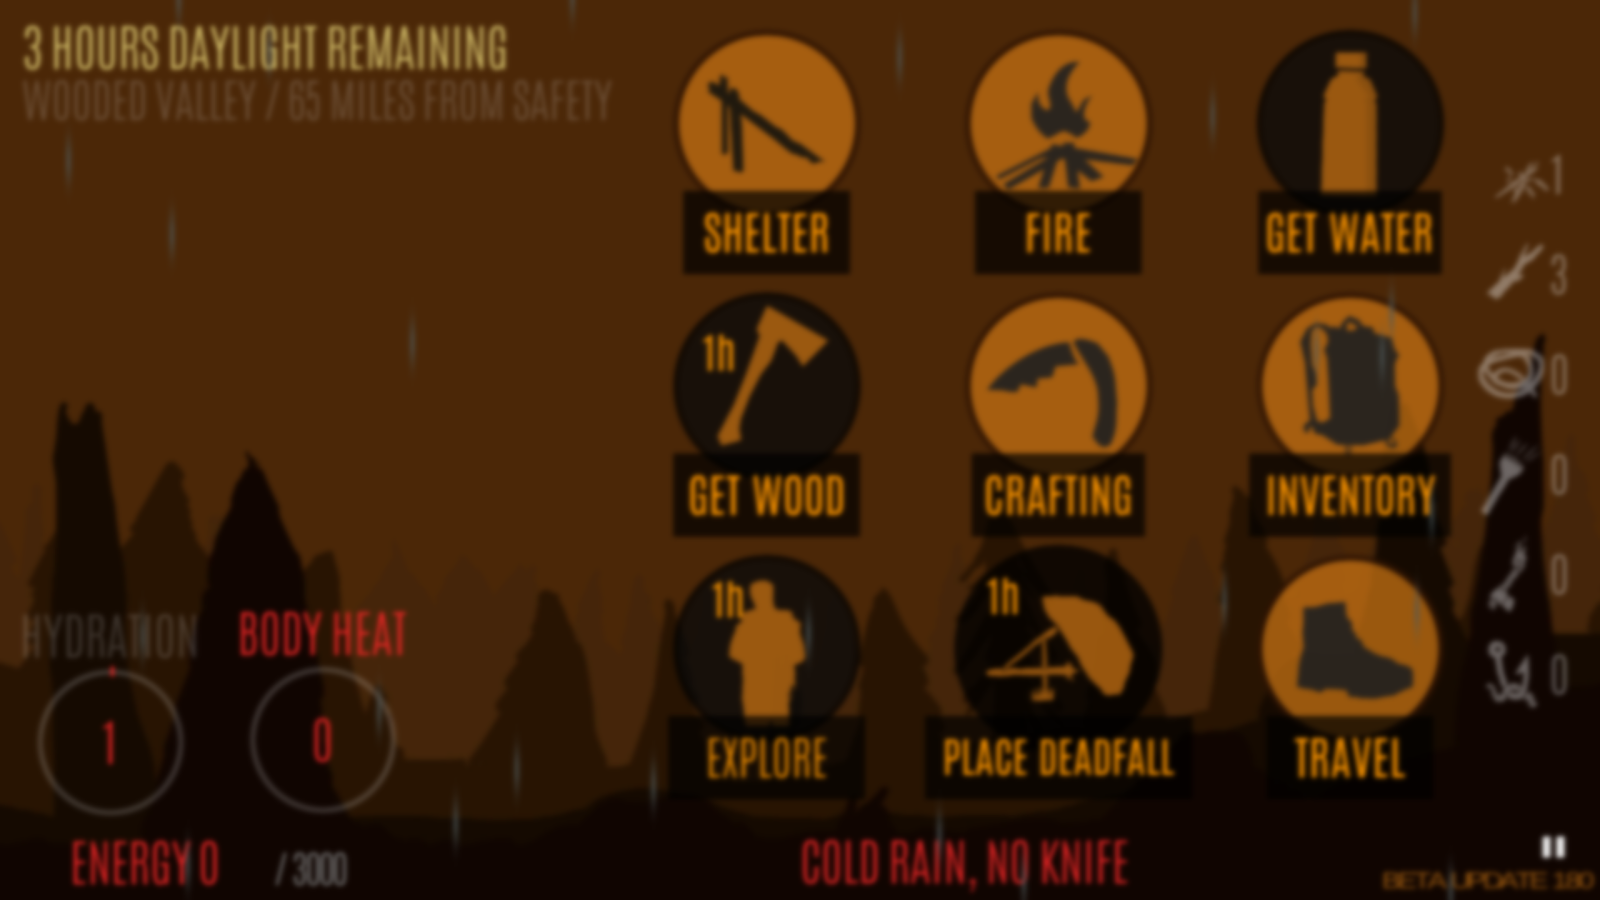 Survive - Wilderness survival- screenshot